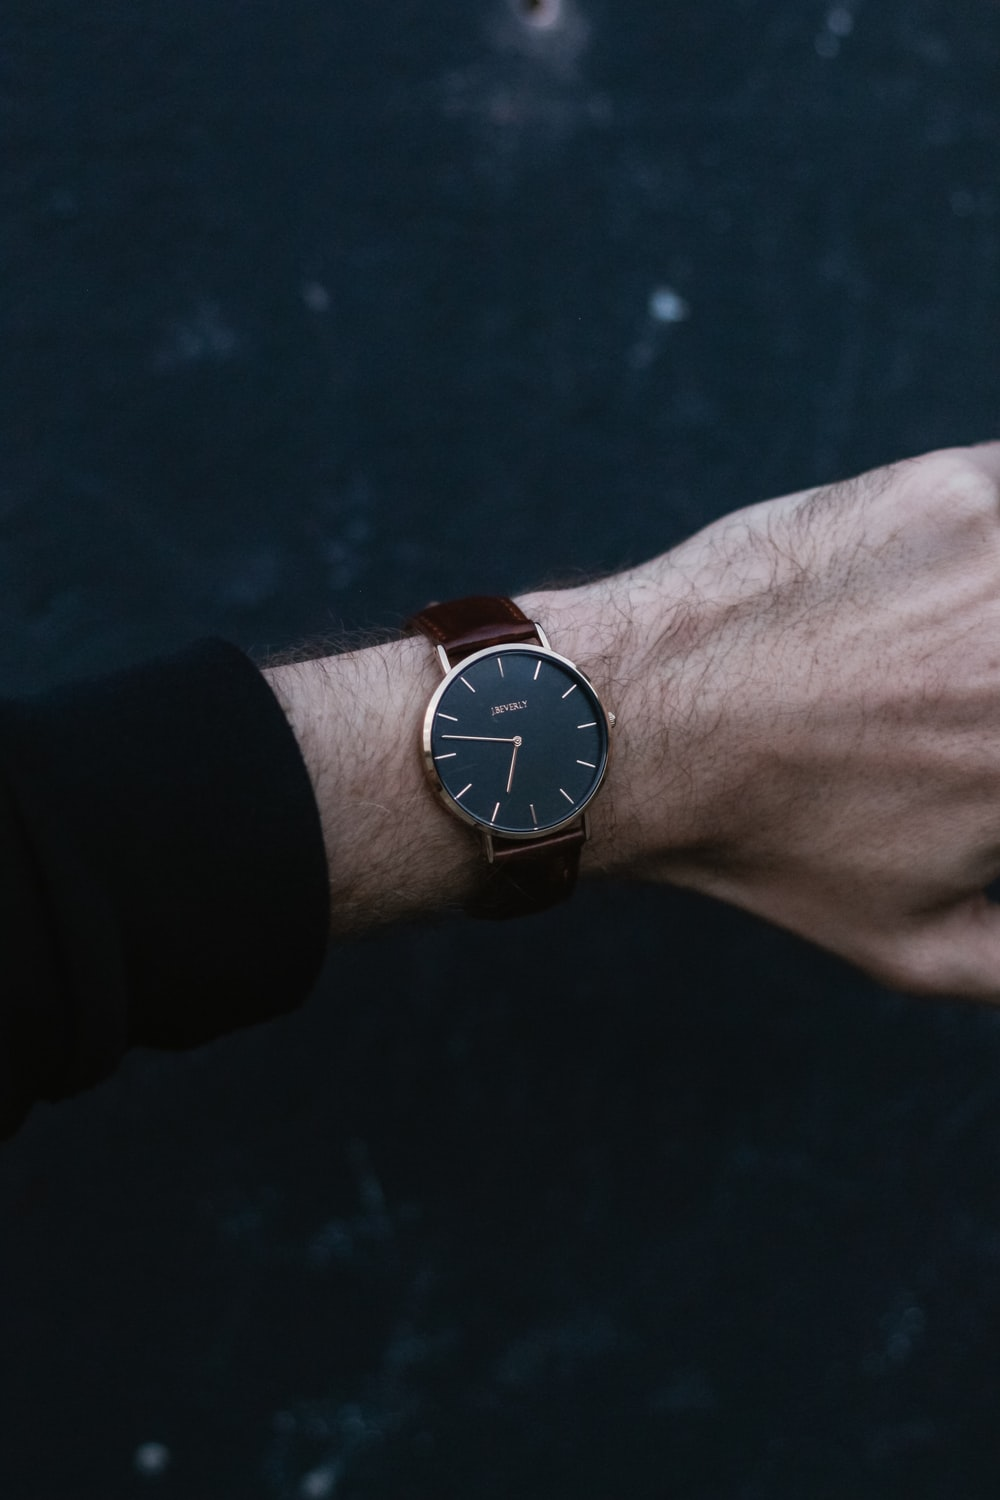 person wears analog watch reading 06:47